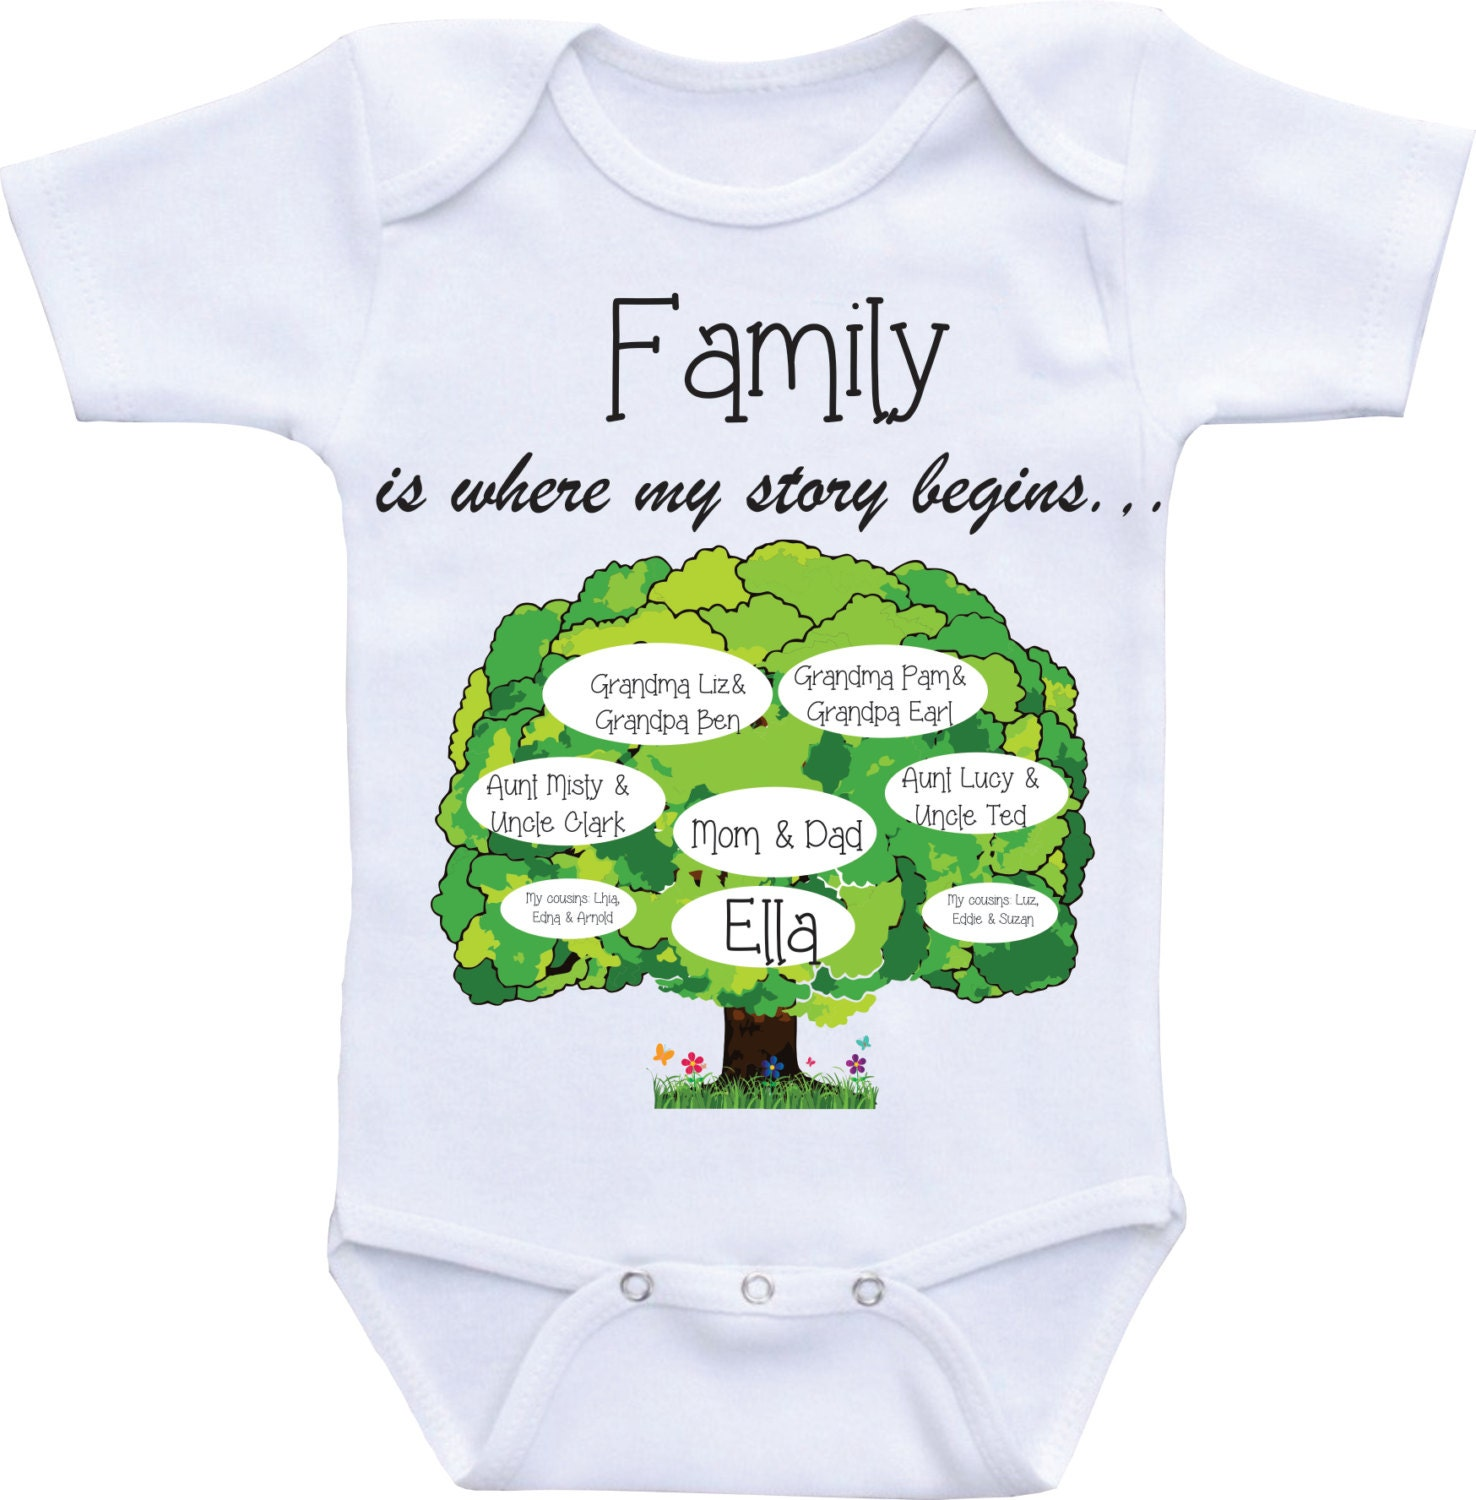 Personalized Baby Gift Ideas Boy : Family tree onesies unique baby onesie personalized custom